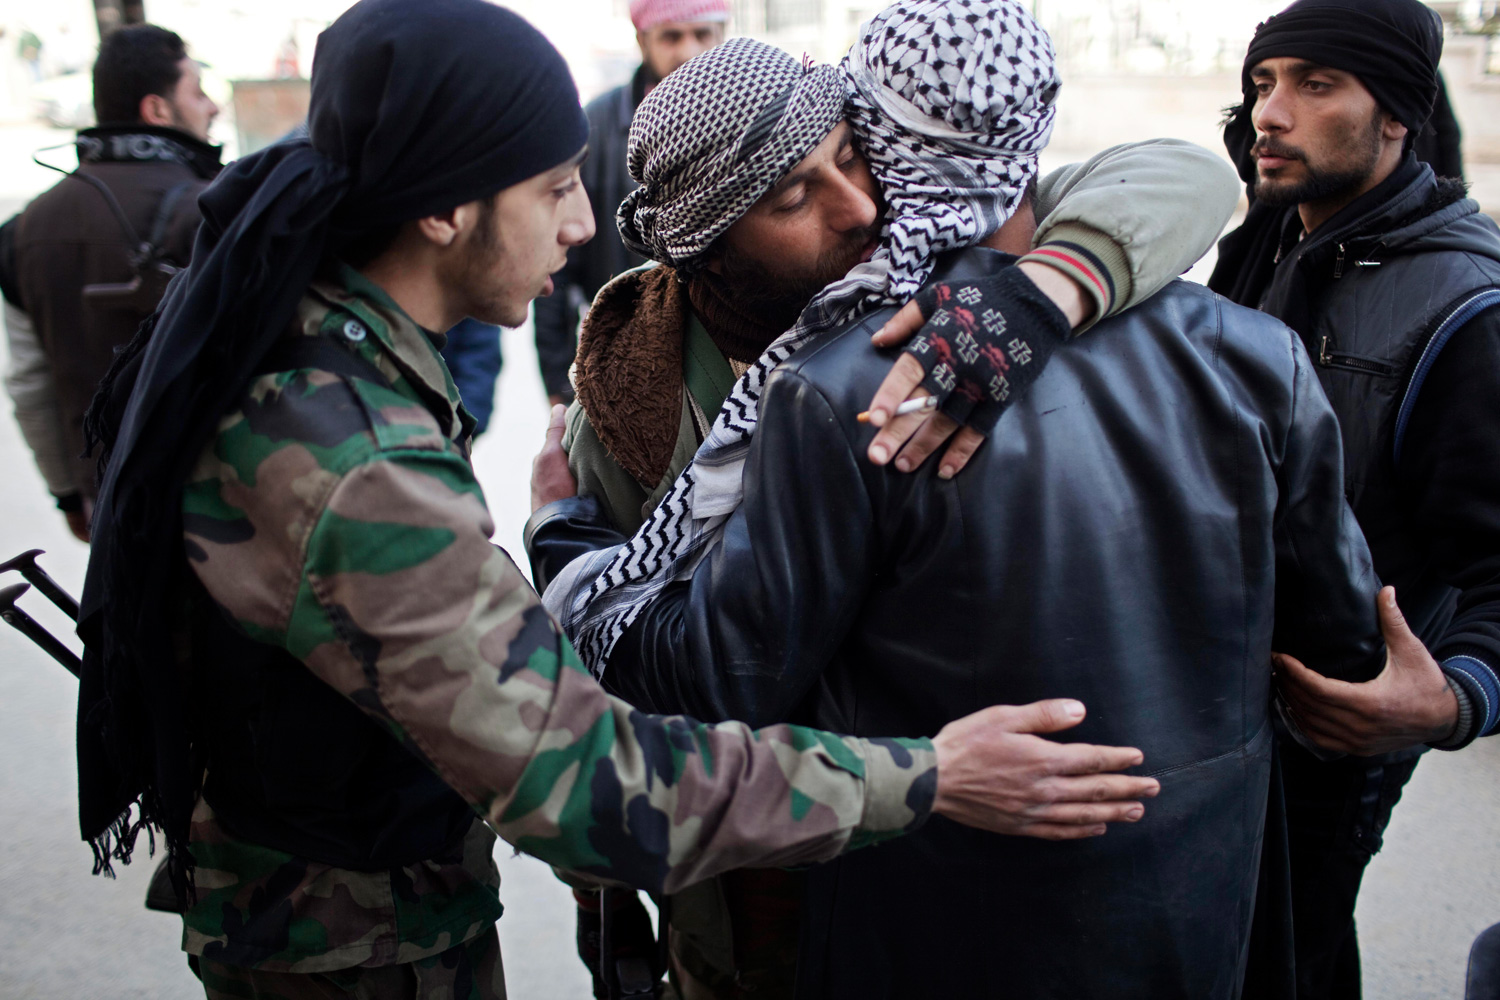 March 10, 2012. Free Syrian Army fighters console a comrade after an ambulance carried an injured friend to a hospital during fierce fighting against government troops in Idlib, north Syria.